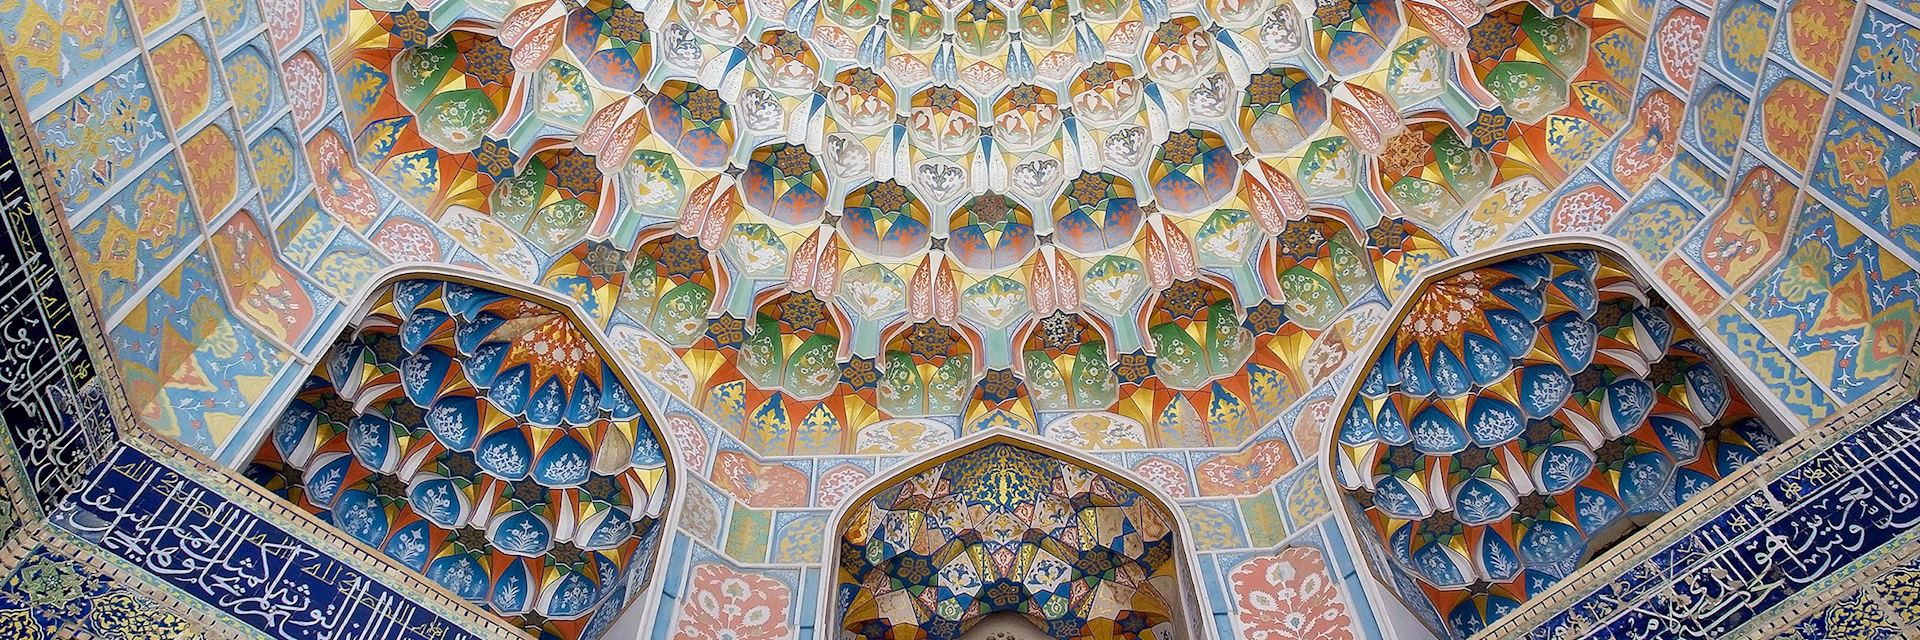 Architecture in Bukhara